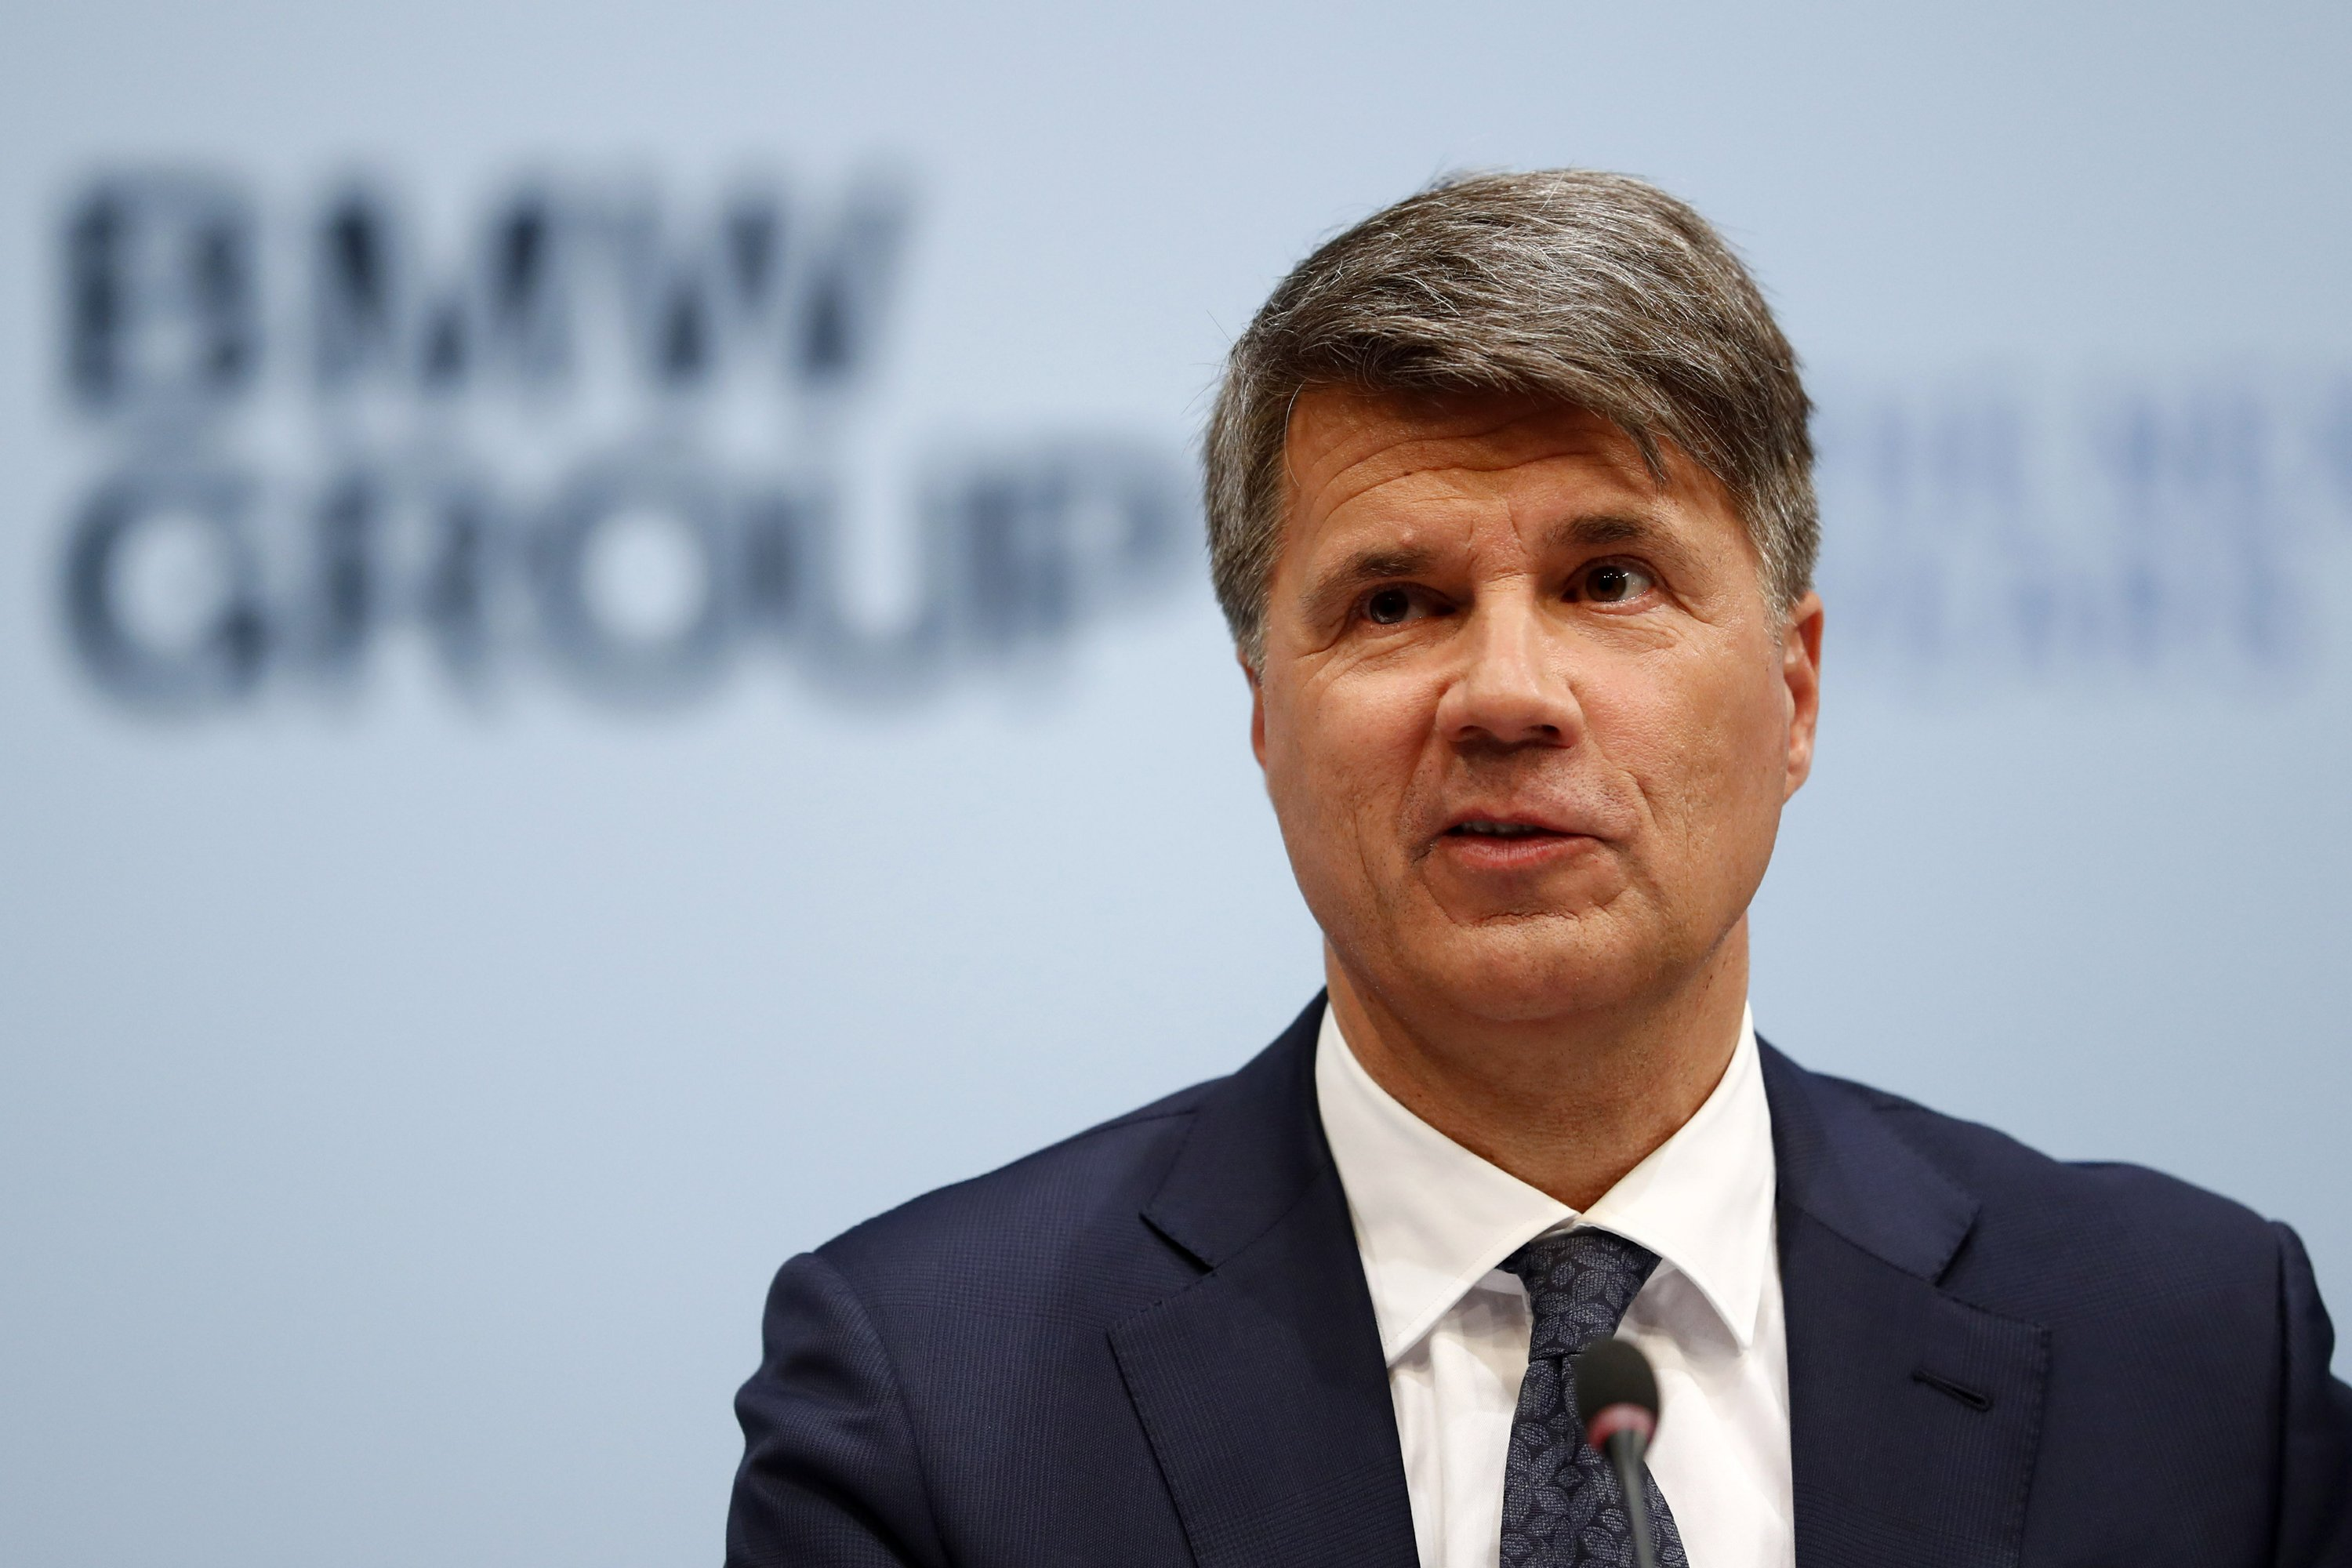 Bmw Ceo To Quit After Carmaker Loses Early Lead In Electrics